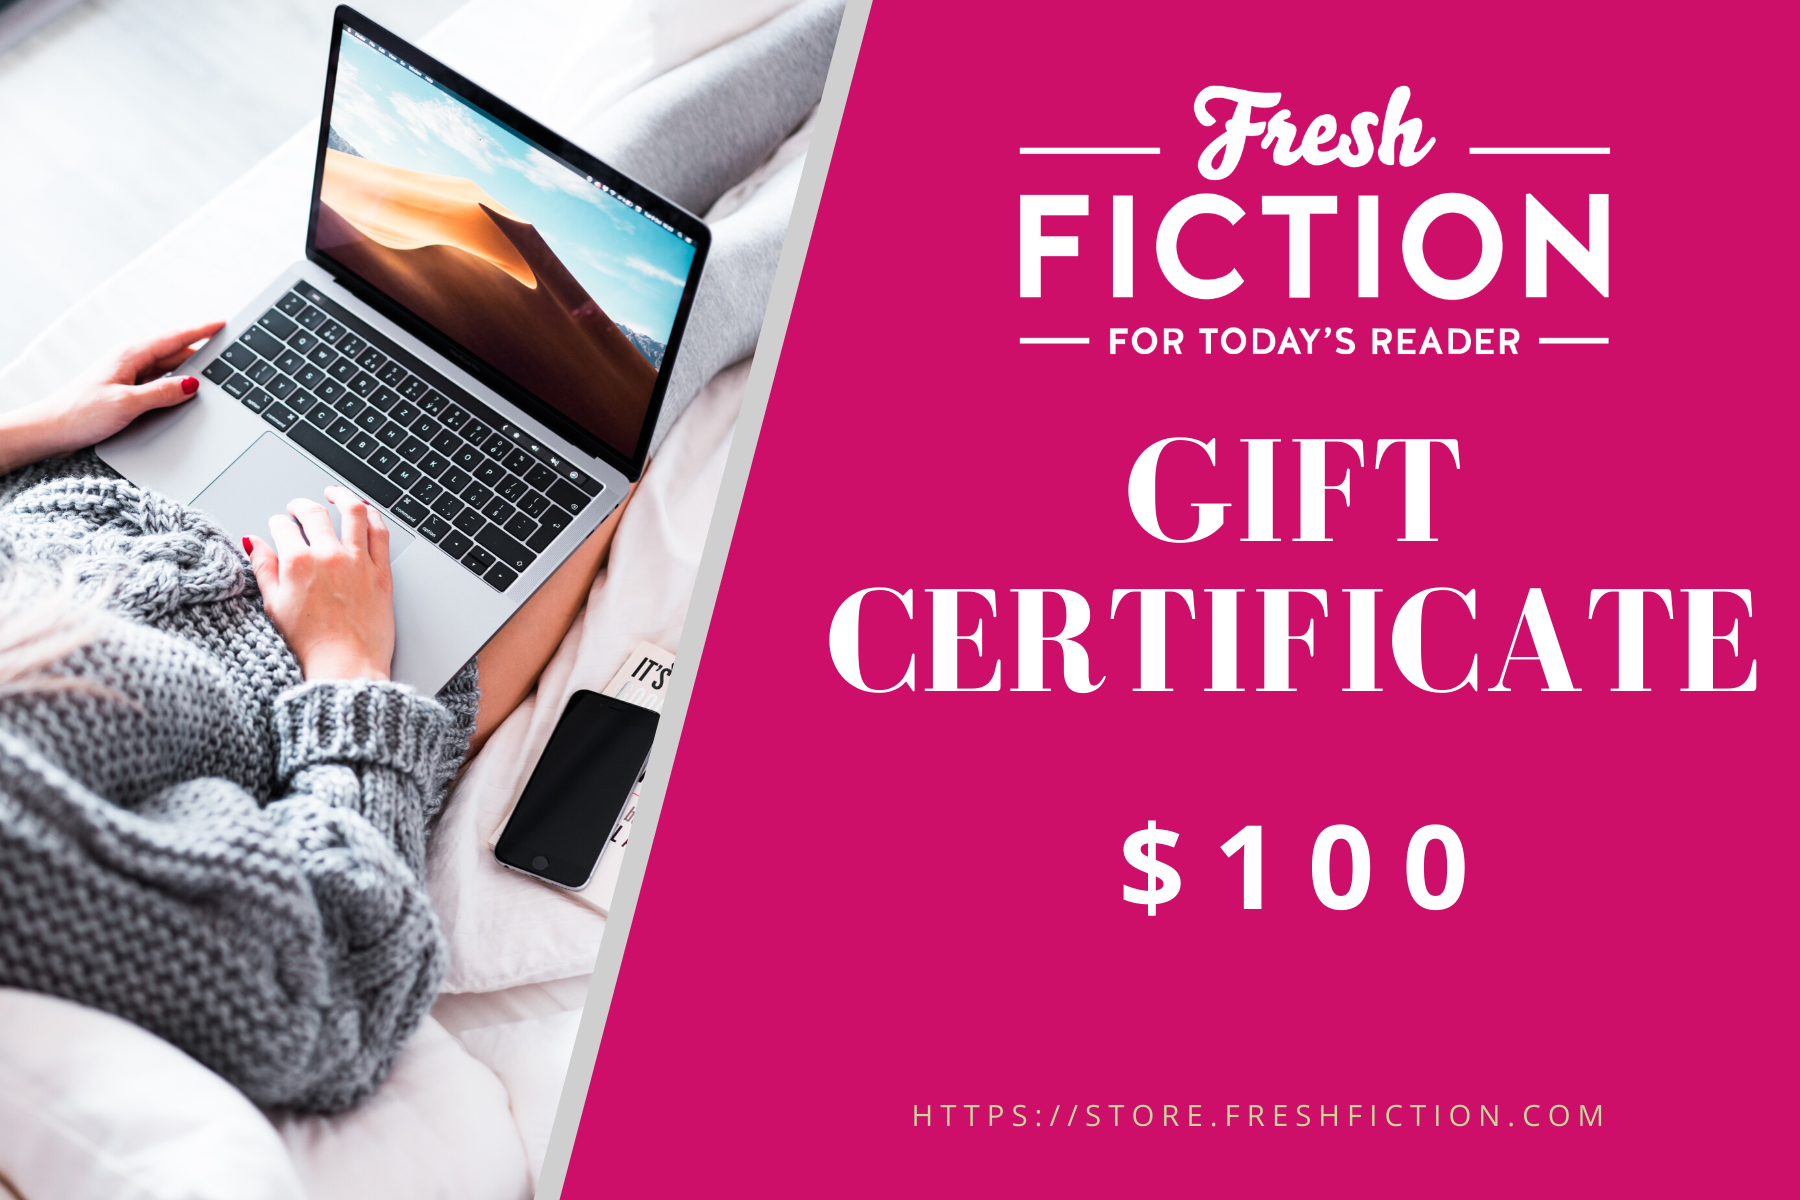 Fresh Fiction Gift Certificate